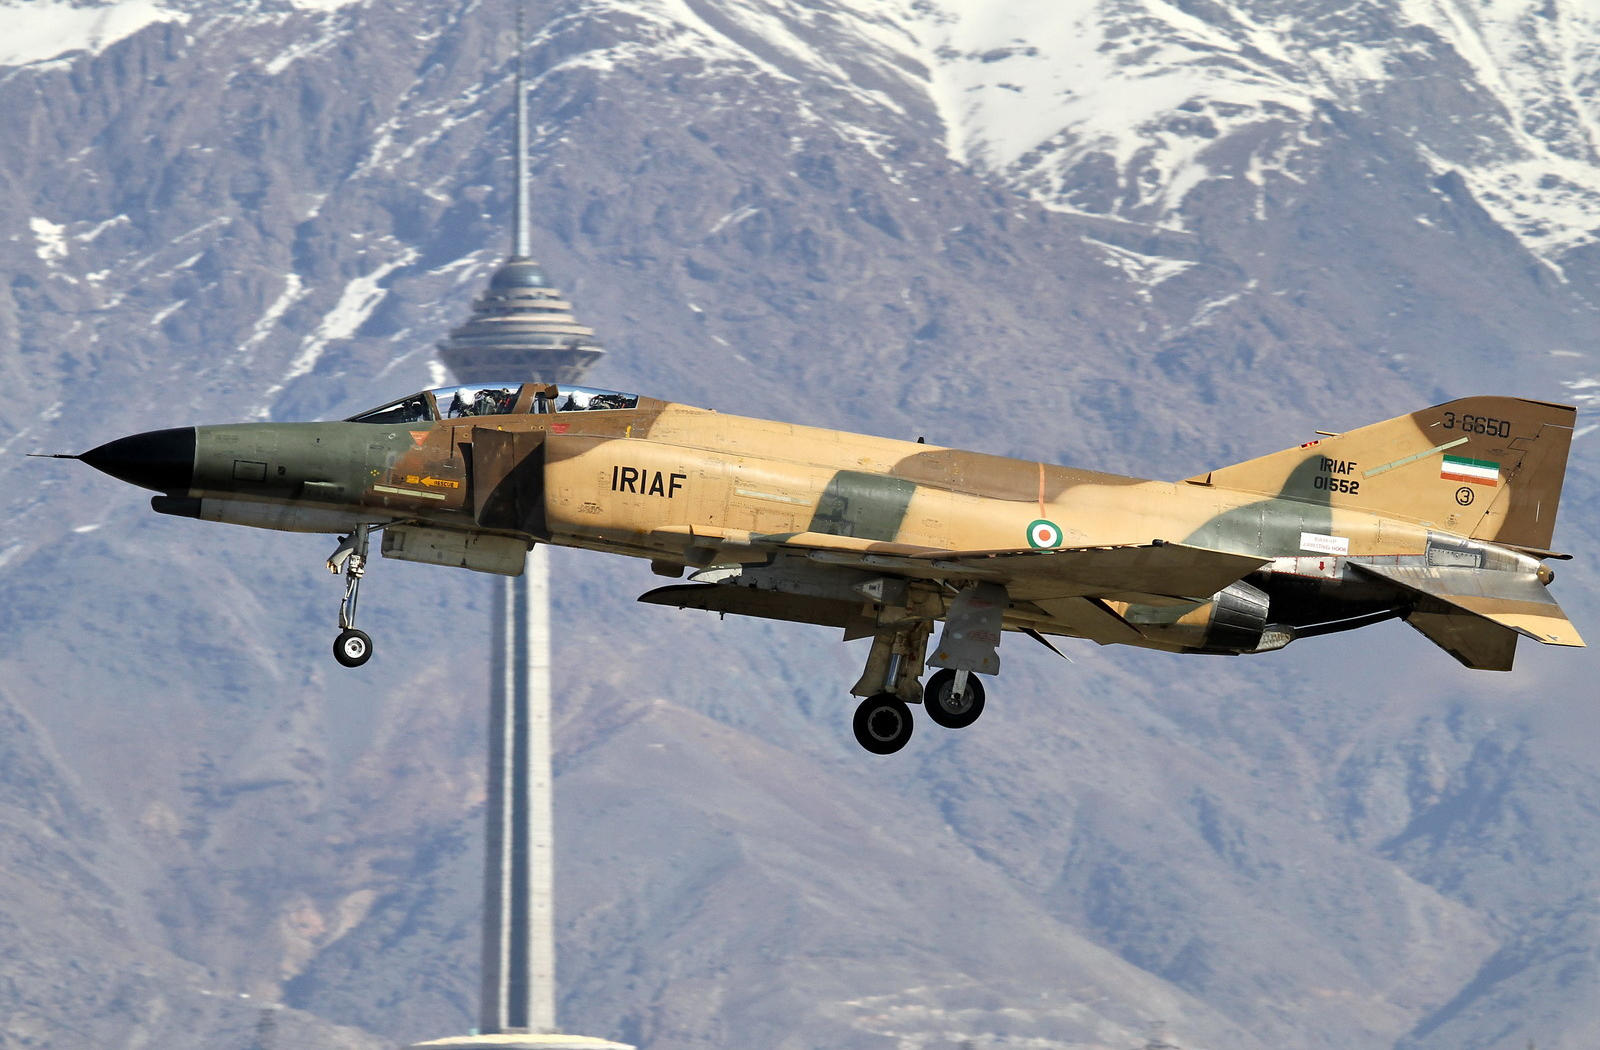 An Iranian F-4 Phantom II landing in Tehran in March 2013. via The Aviationist